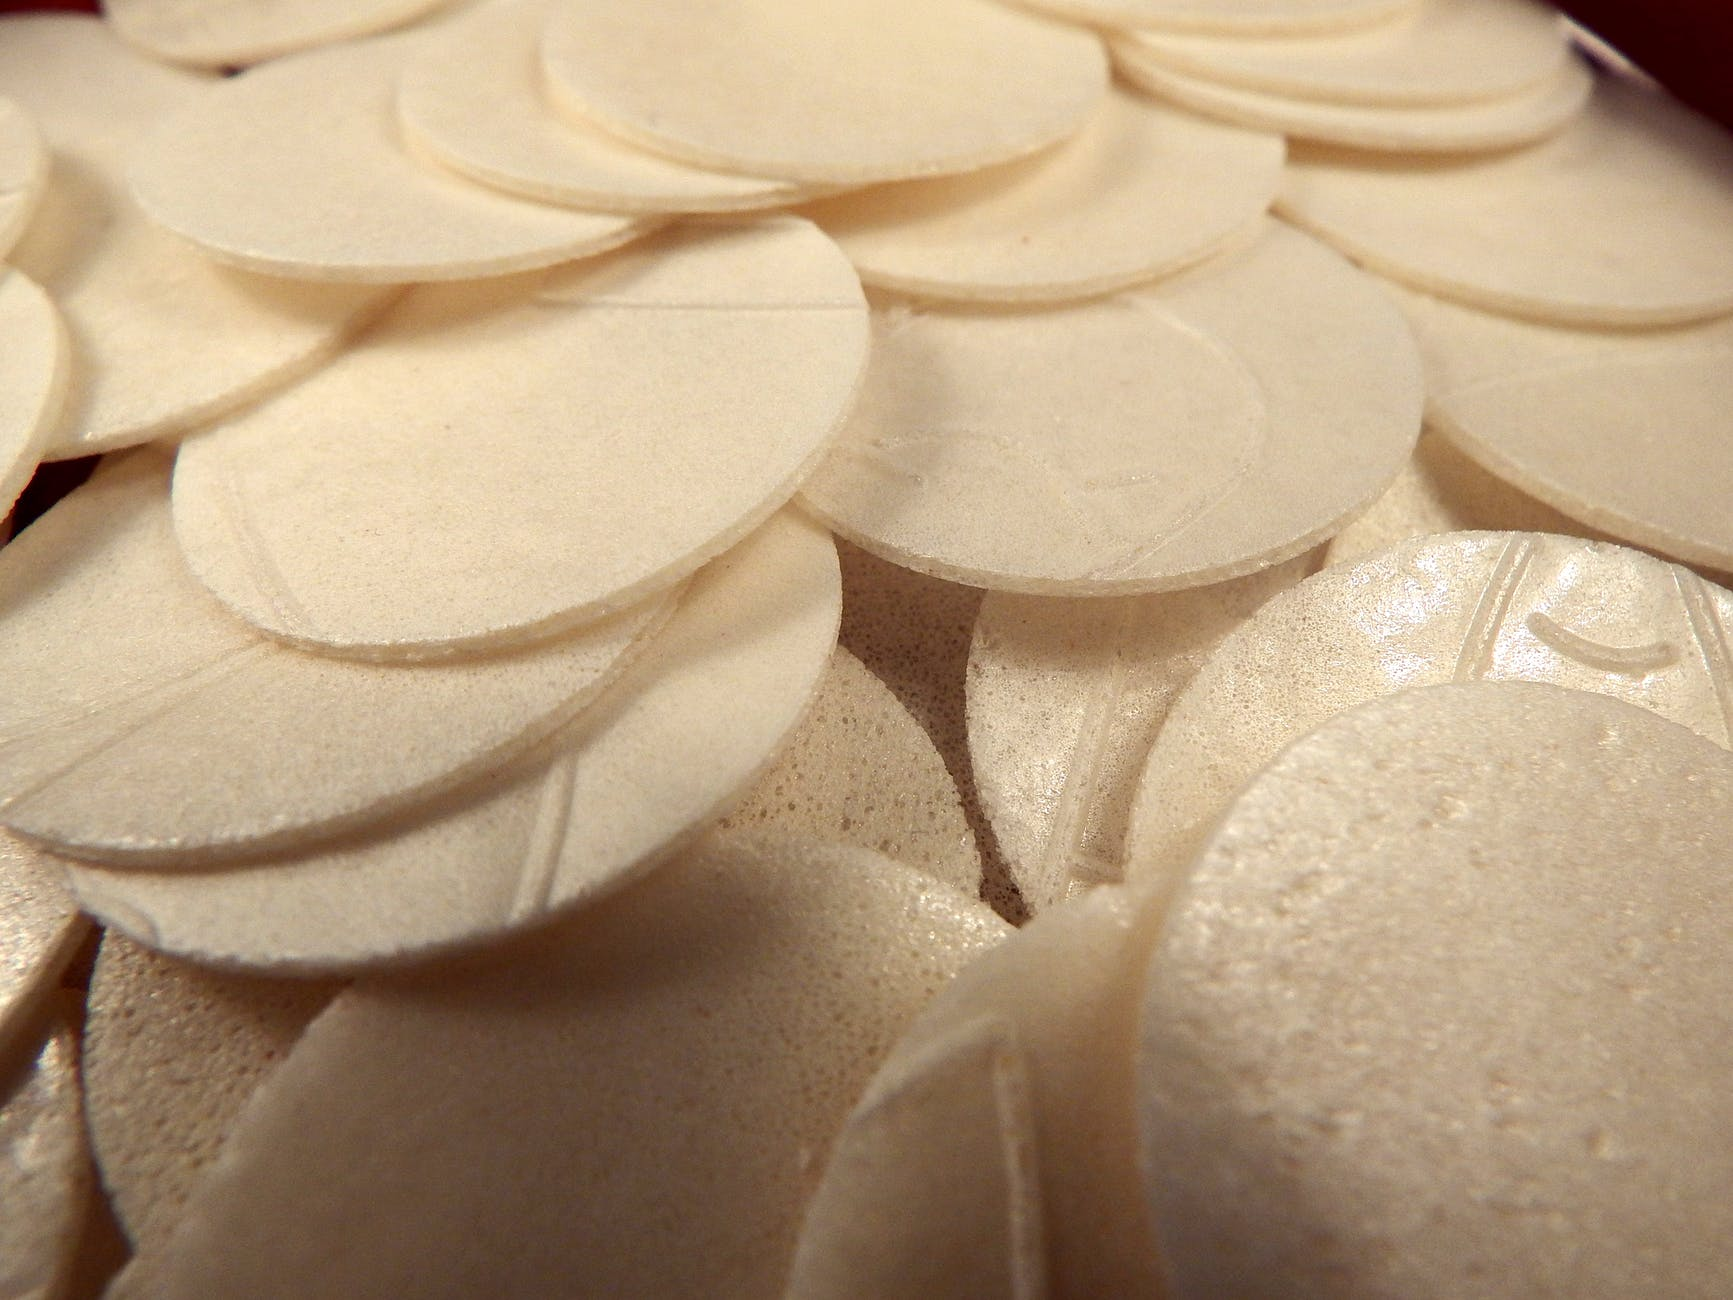 pile of thin white circles of sacramental bread